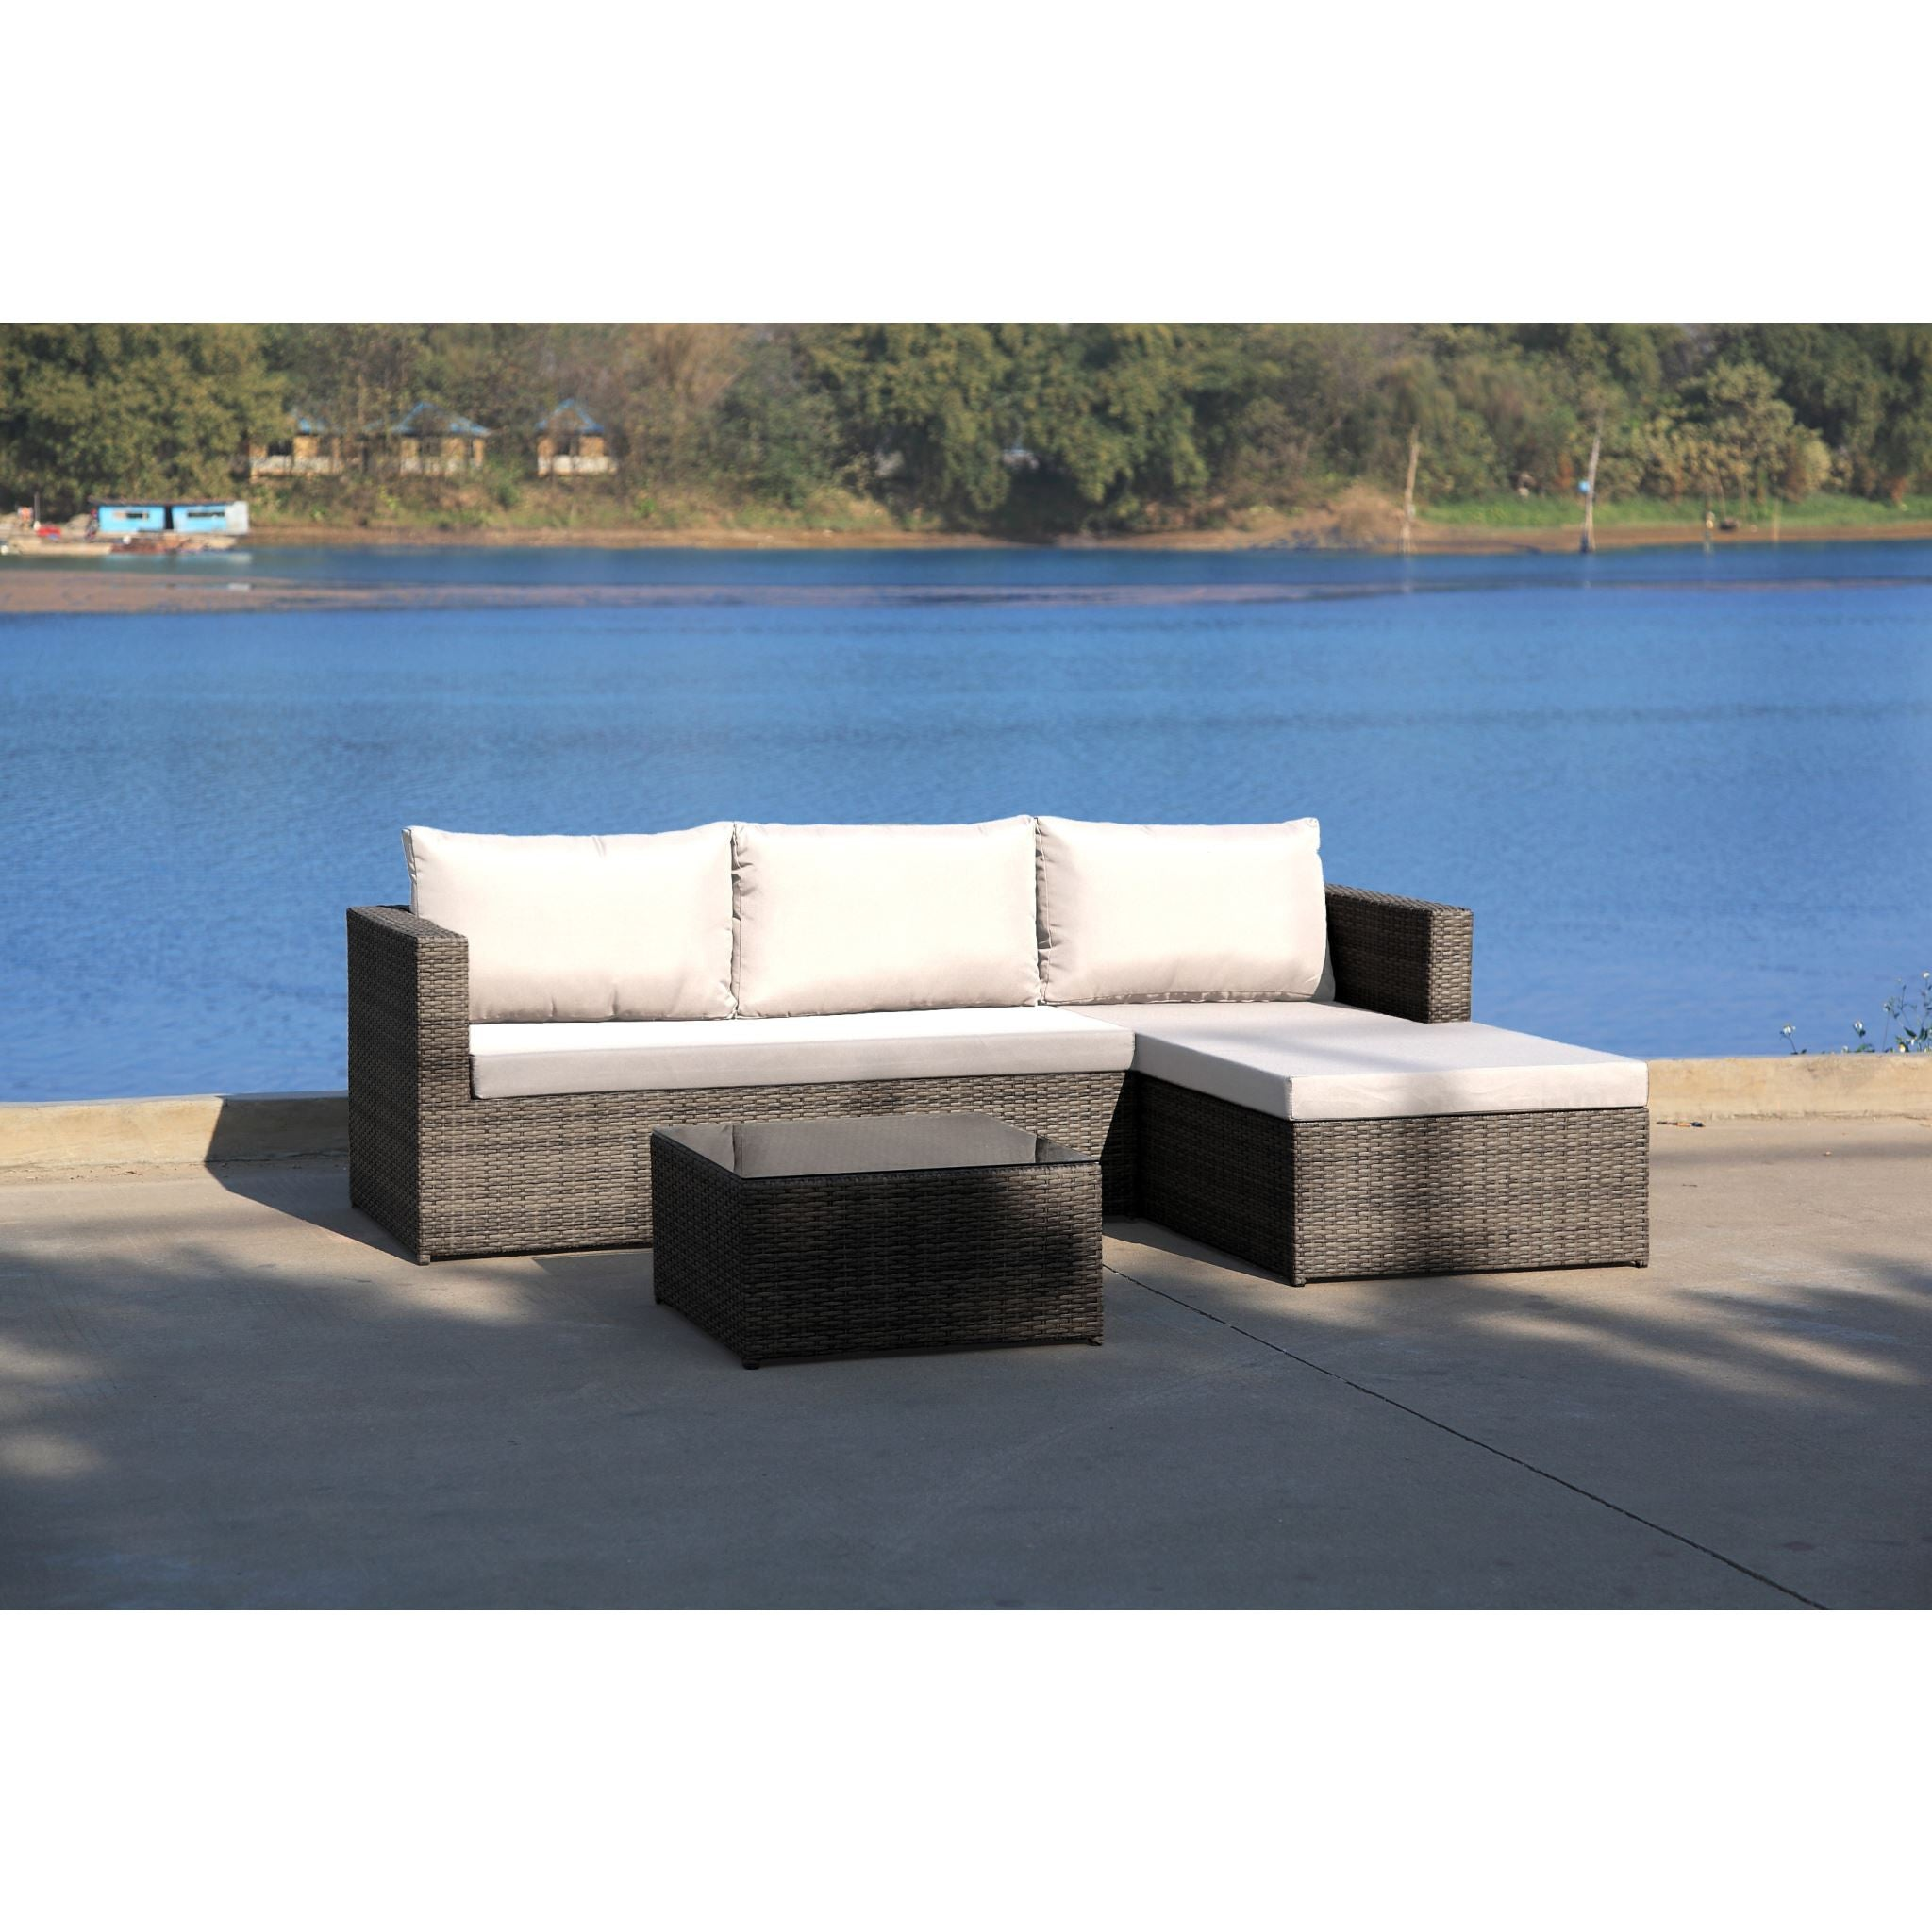 "Sectional Sets tagged ""Sapphire"" BetterPatio"